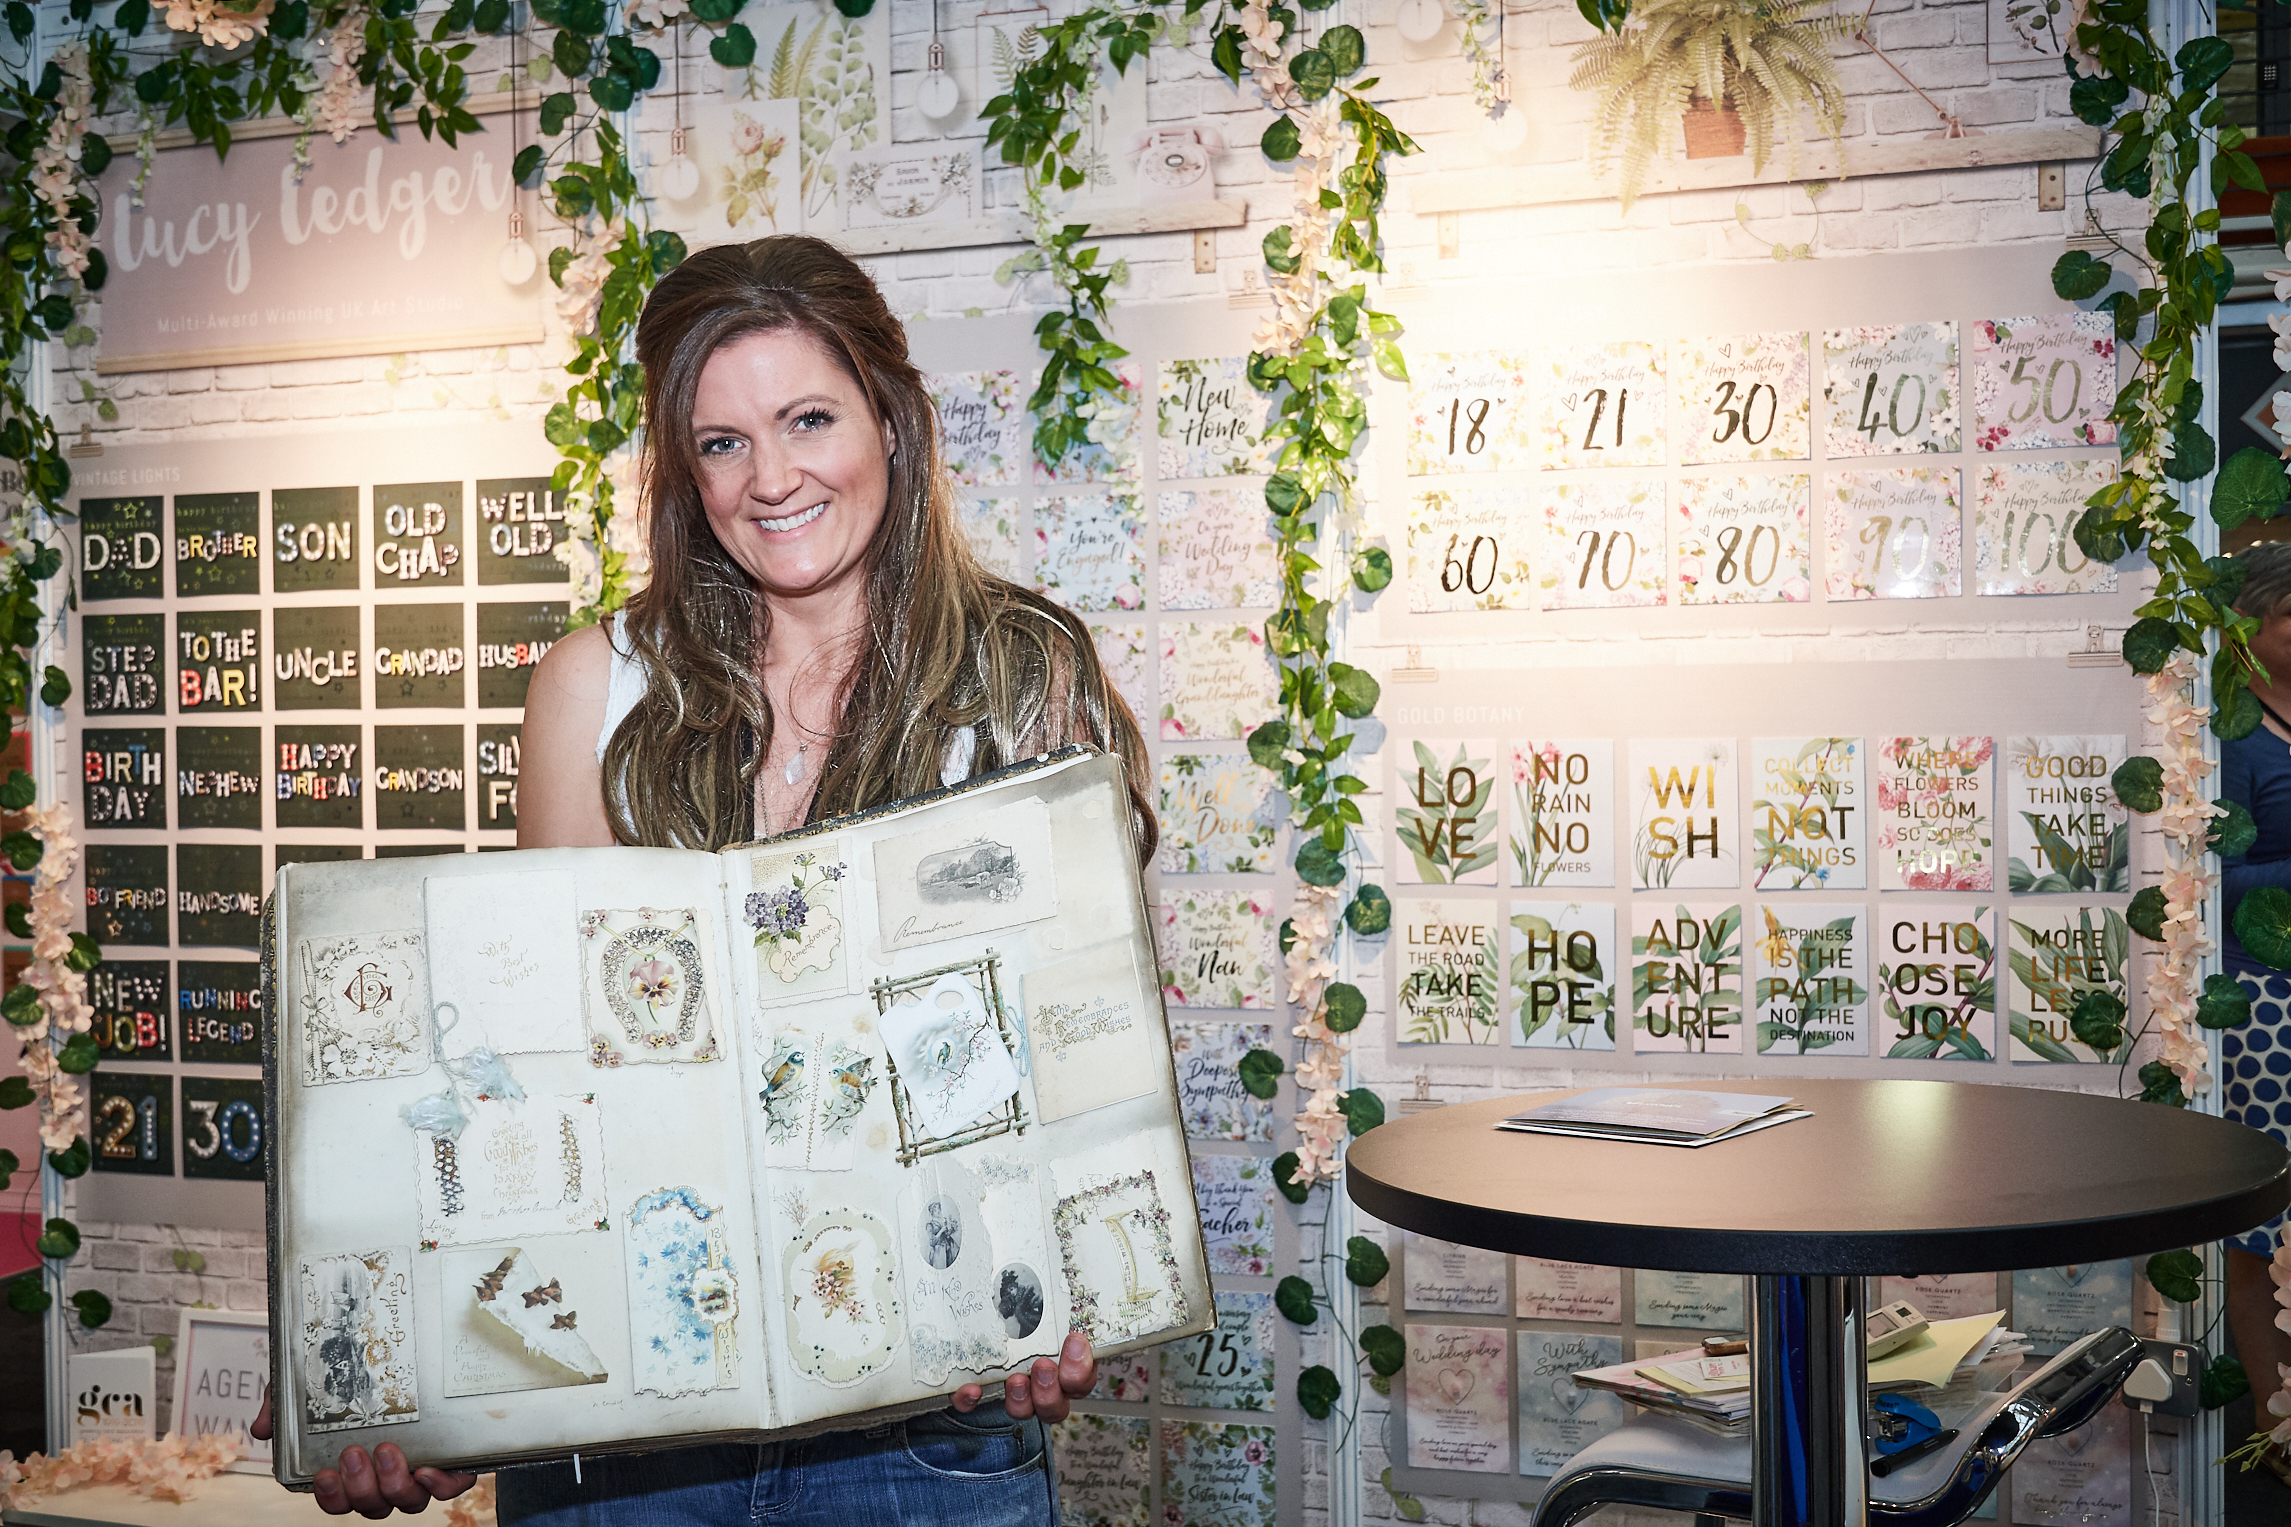 Above: Lucy Ledger on her stand at PG Live this year with her treasured album of historic greeting cards.